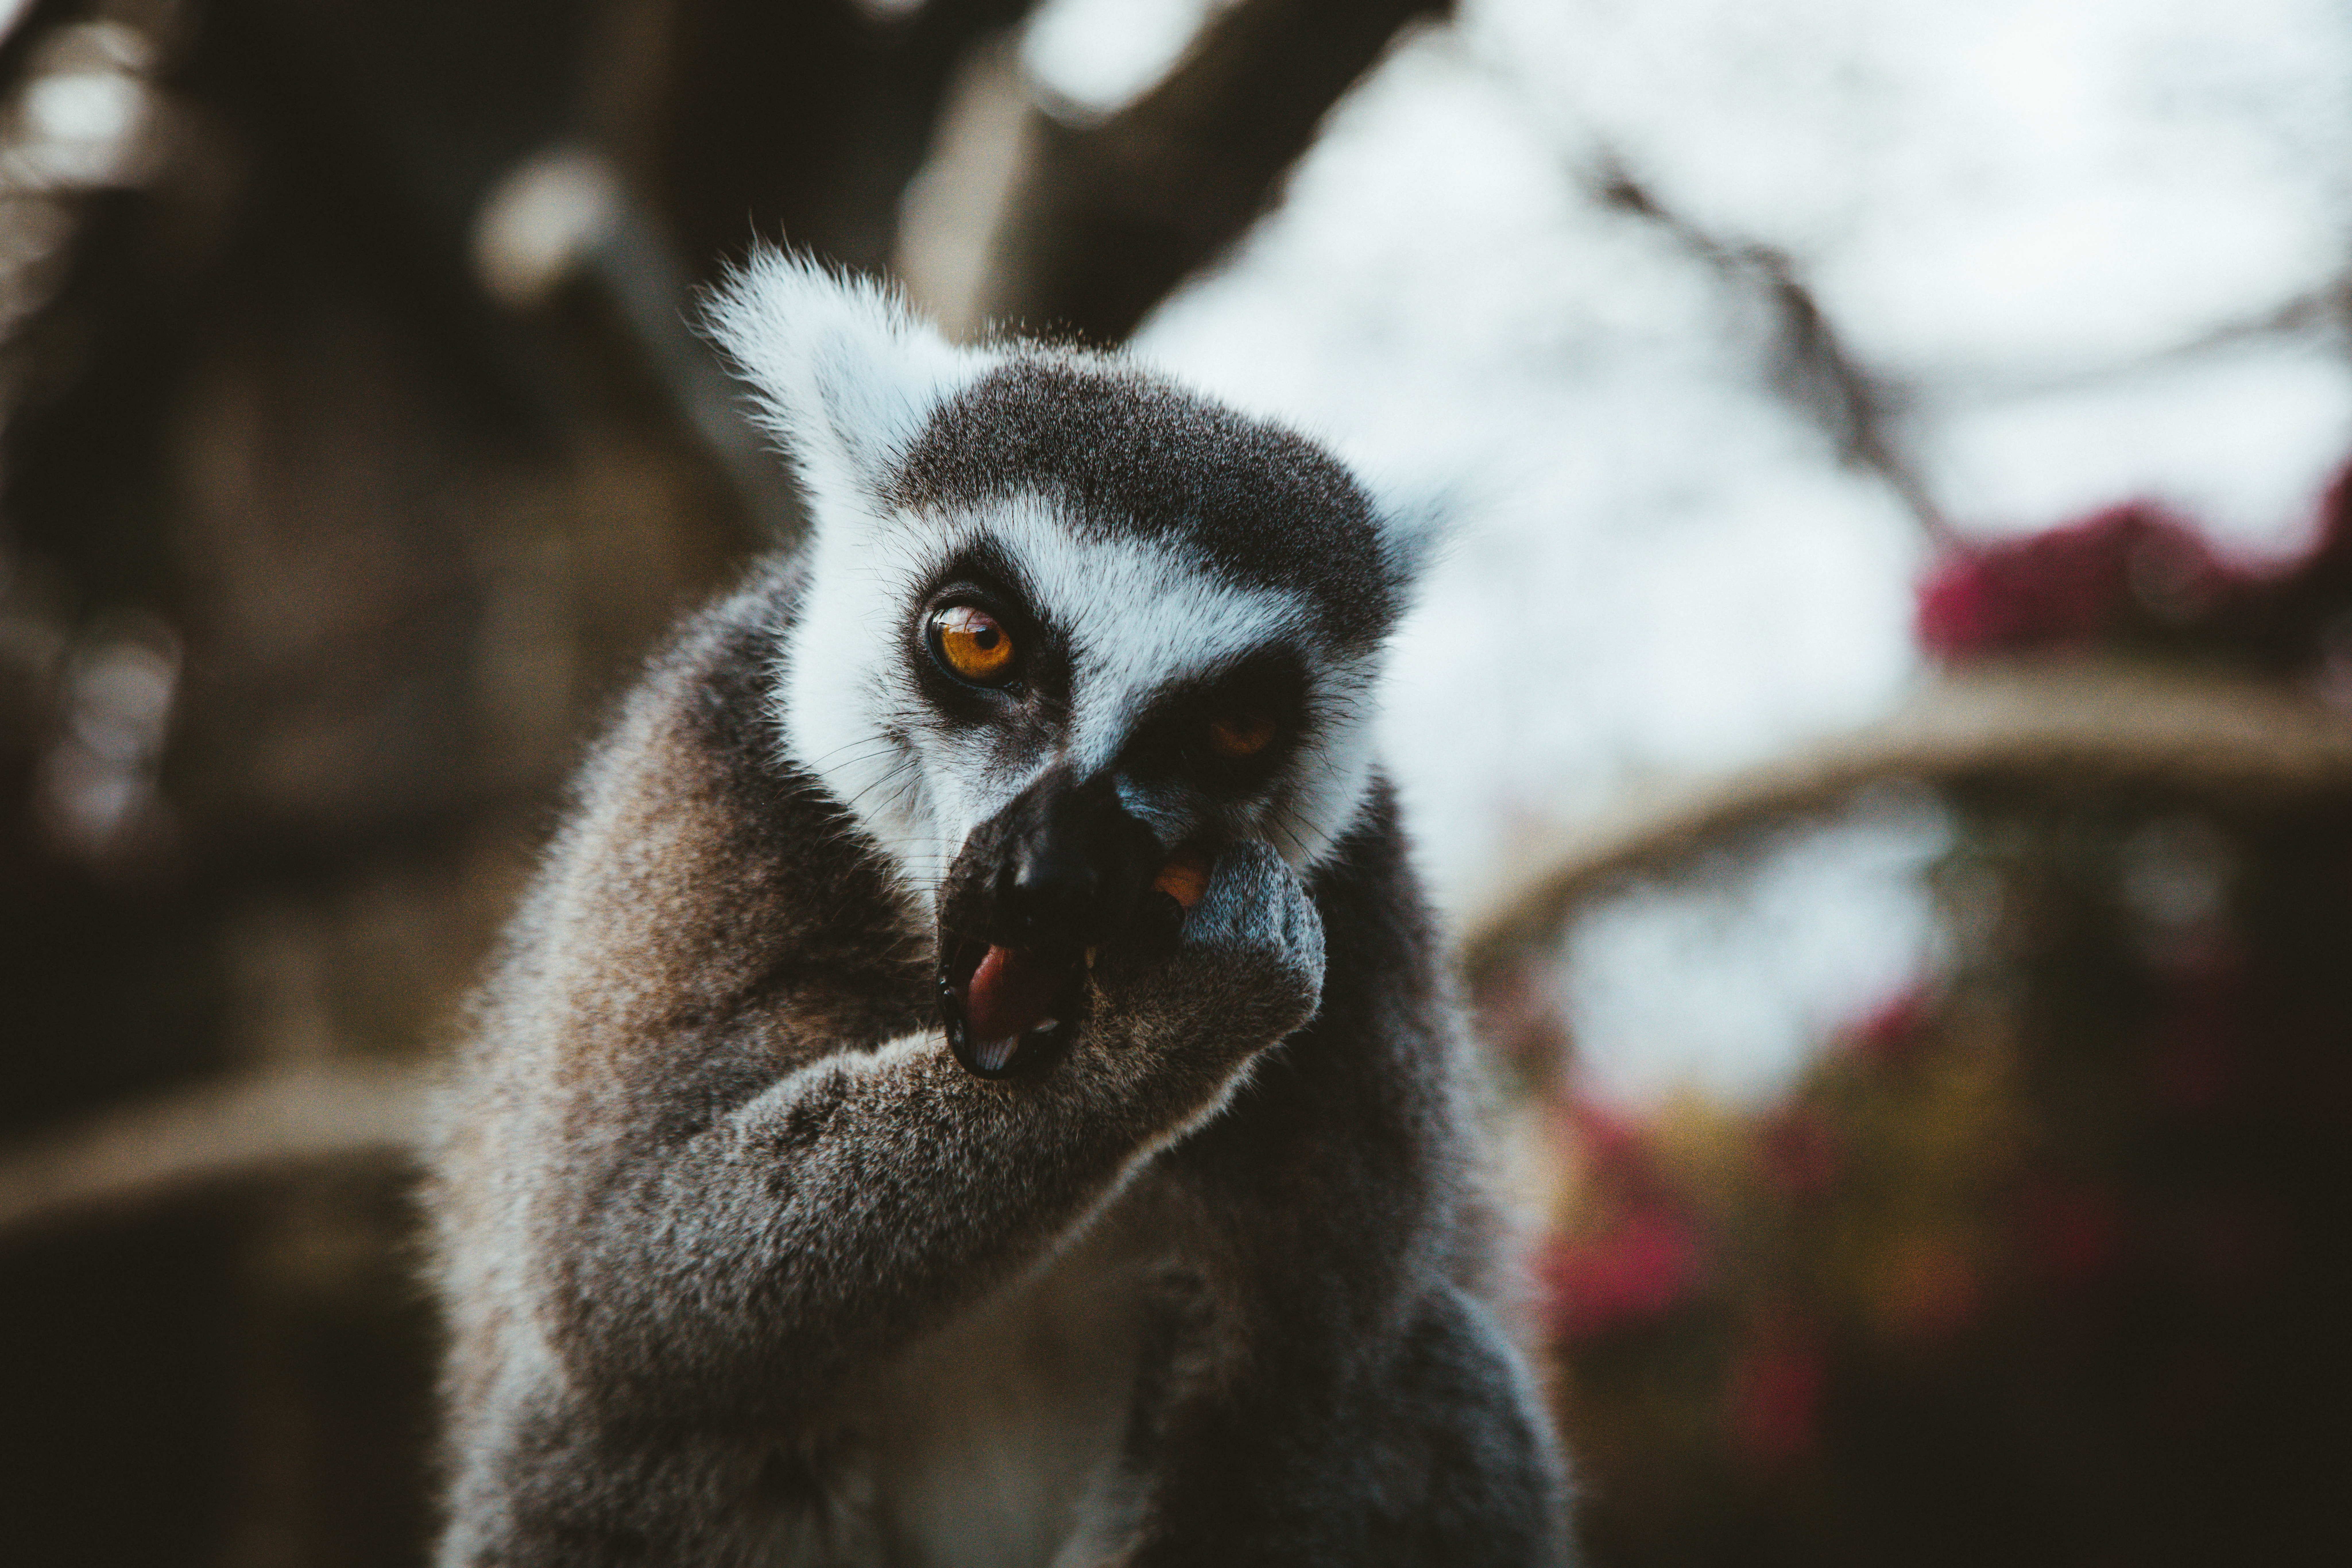 126915 download wallpaper Animals, Lemur, Animal, Muzzle, Eats screensavers and pictures for free